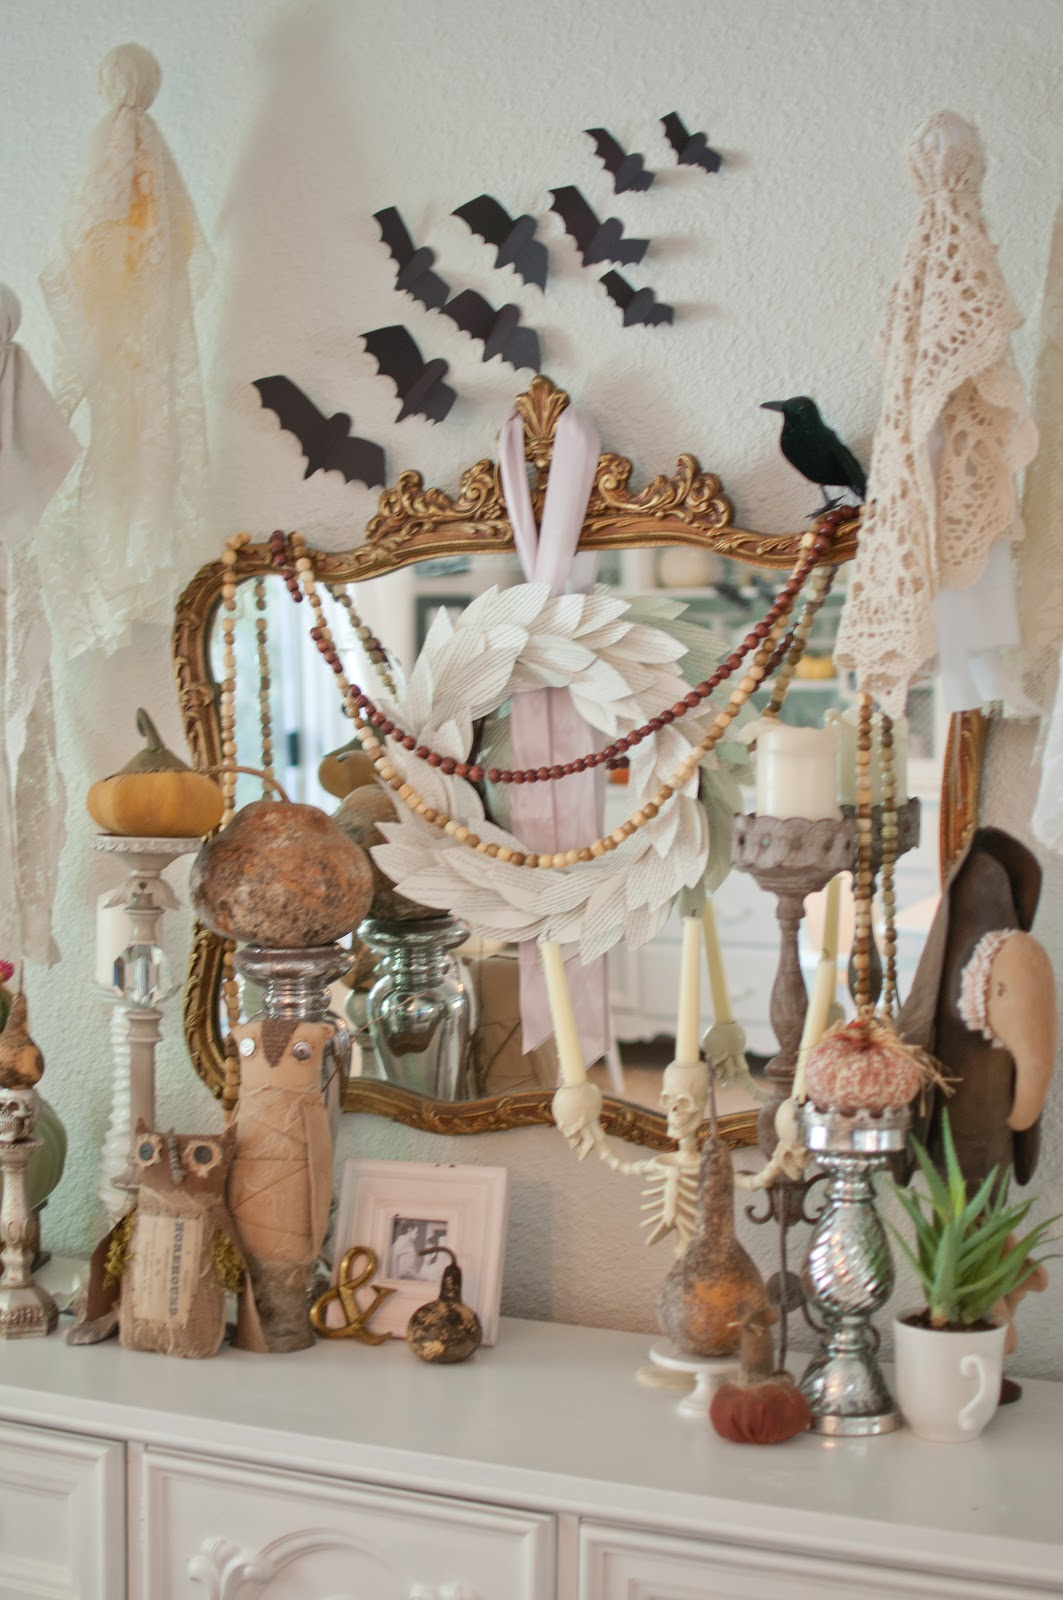 Decorating A Mantel 35 fall mantel decorating ideas - halloween mantel decorations